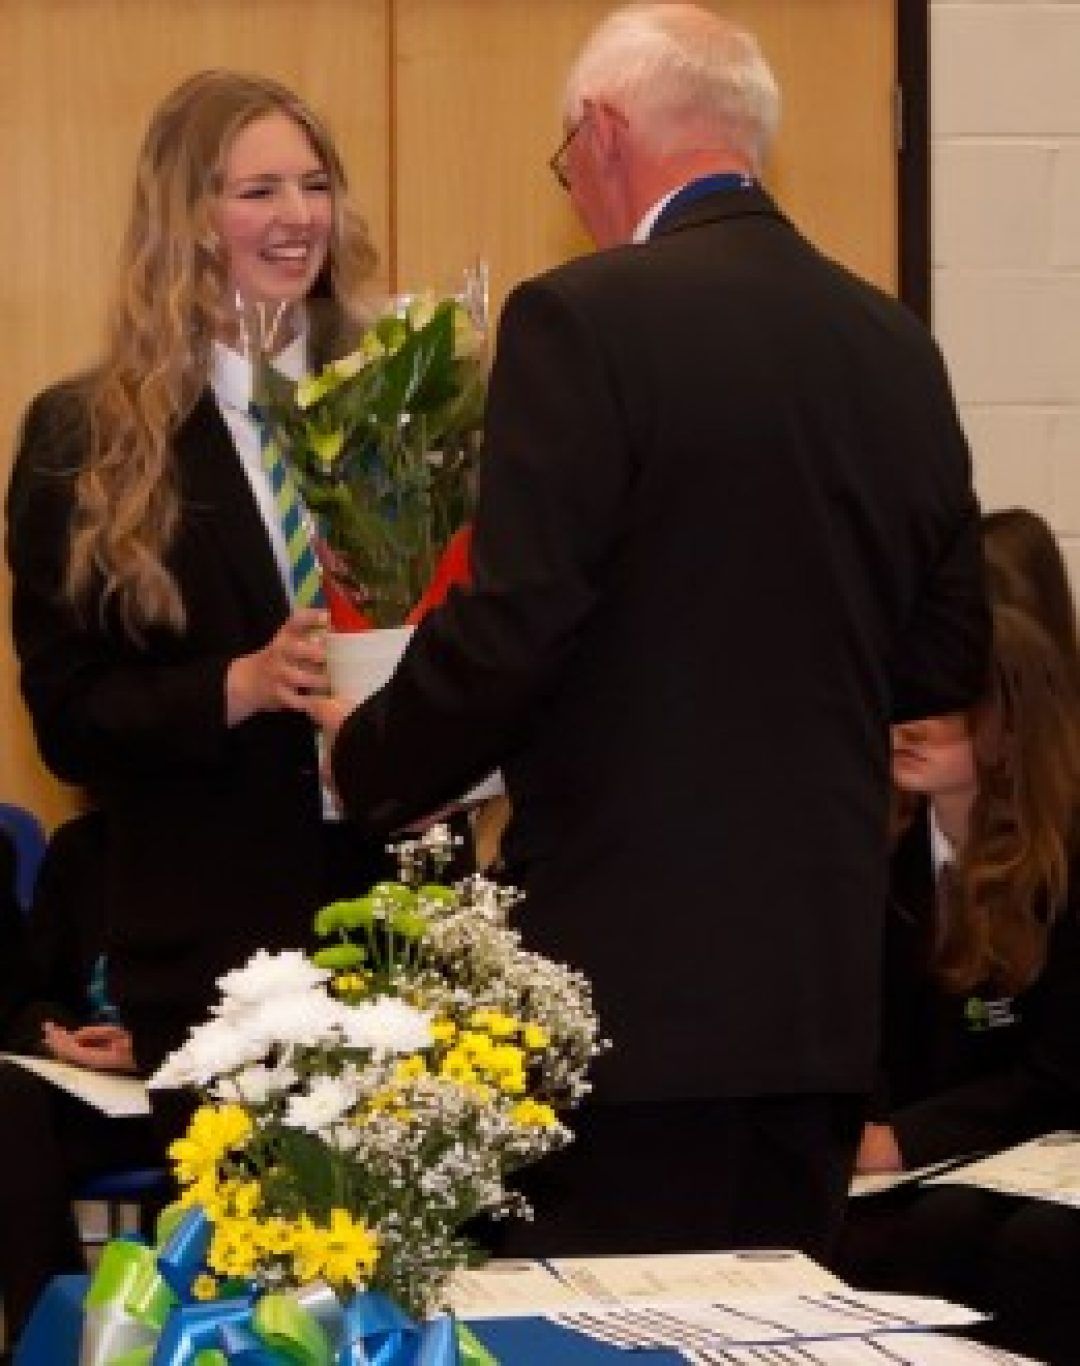 Amber Mold, winner of the Principal's Prize, being presented with a plant by Michael Ryan, Deputy Mayor of Newton Abbot